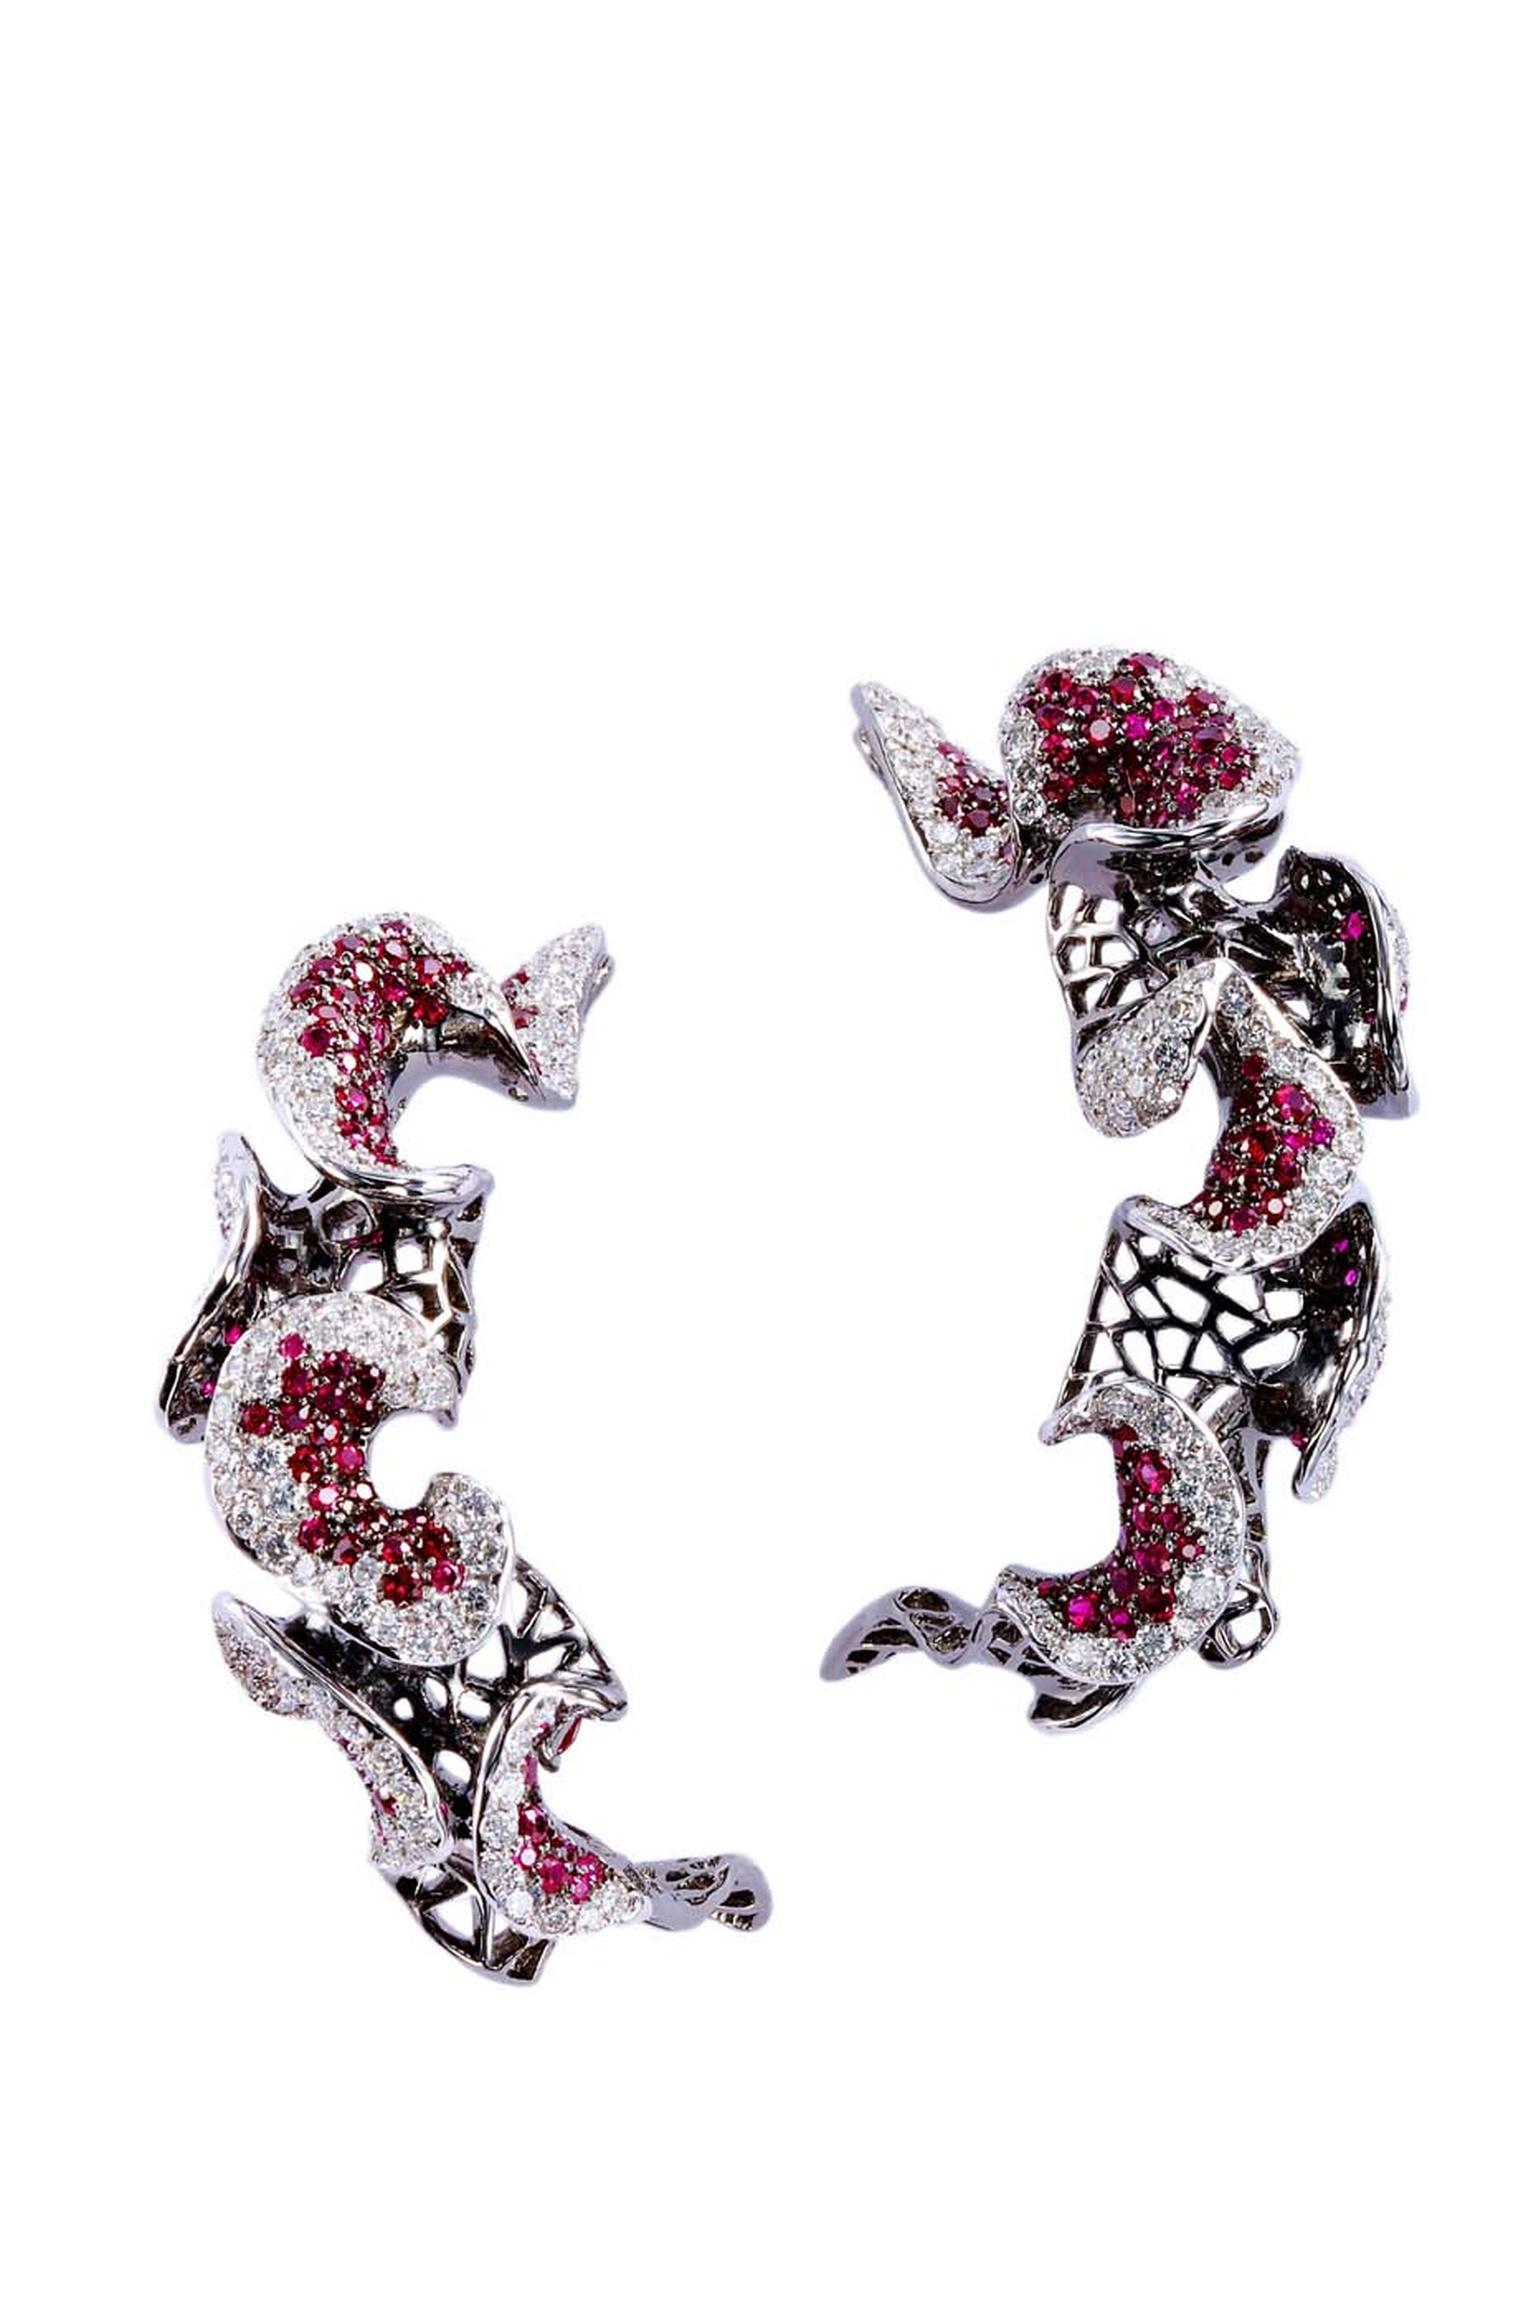 Chara Wen Fashion Muse earrings with diamonds and rubies.